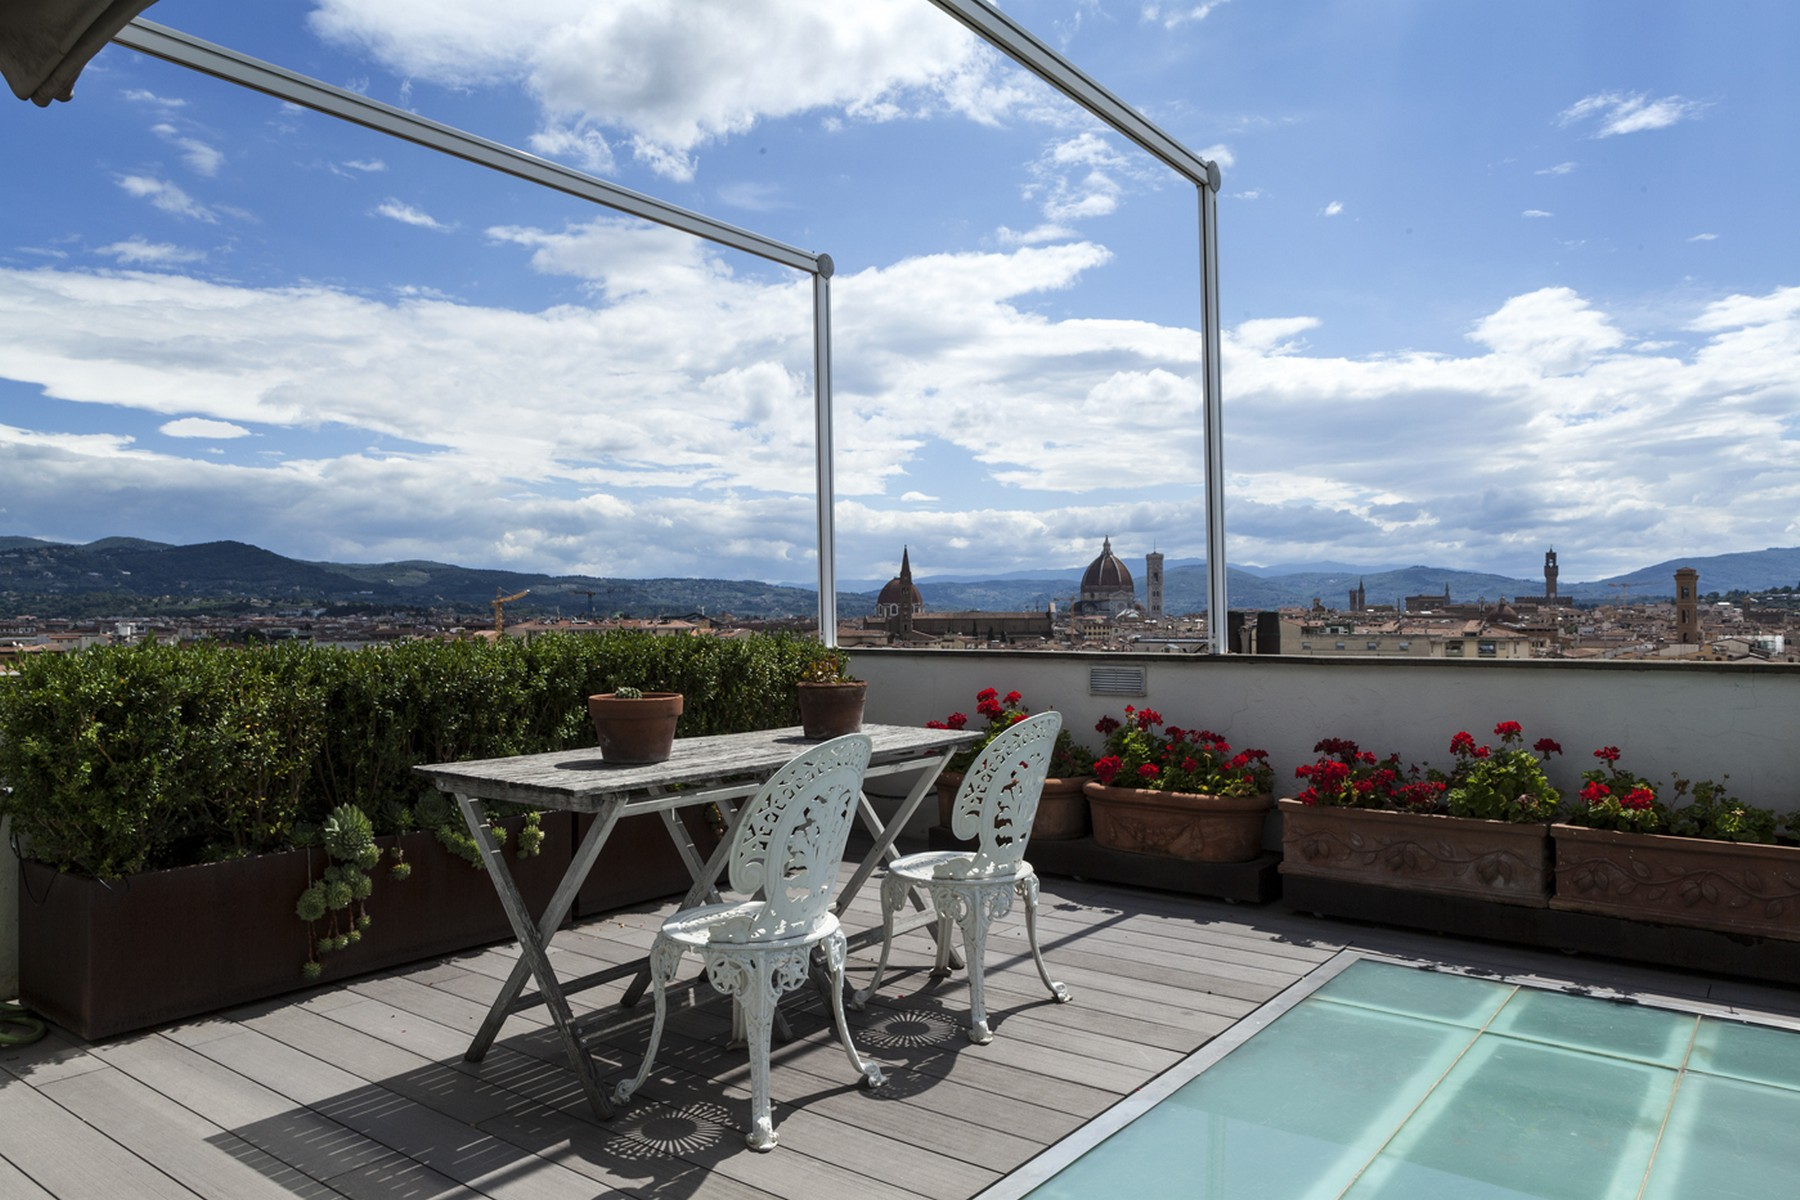 Appartement pour l Vente à Stunning penthouse with pool and views over Florence Via Solferino Firenze, Florence 50123 Italie